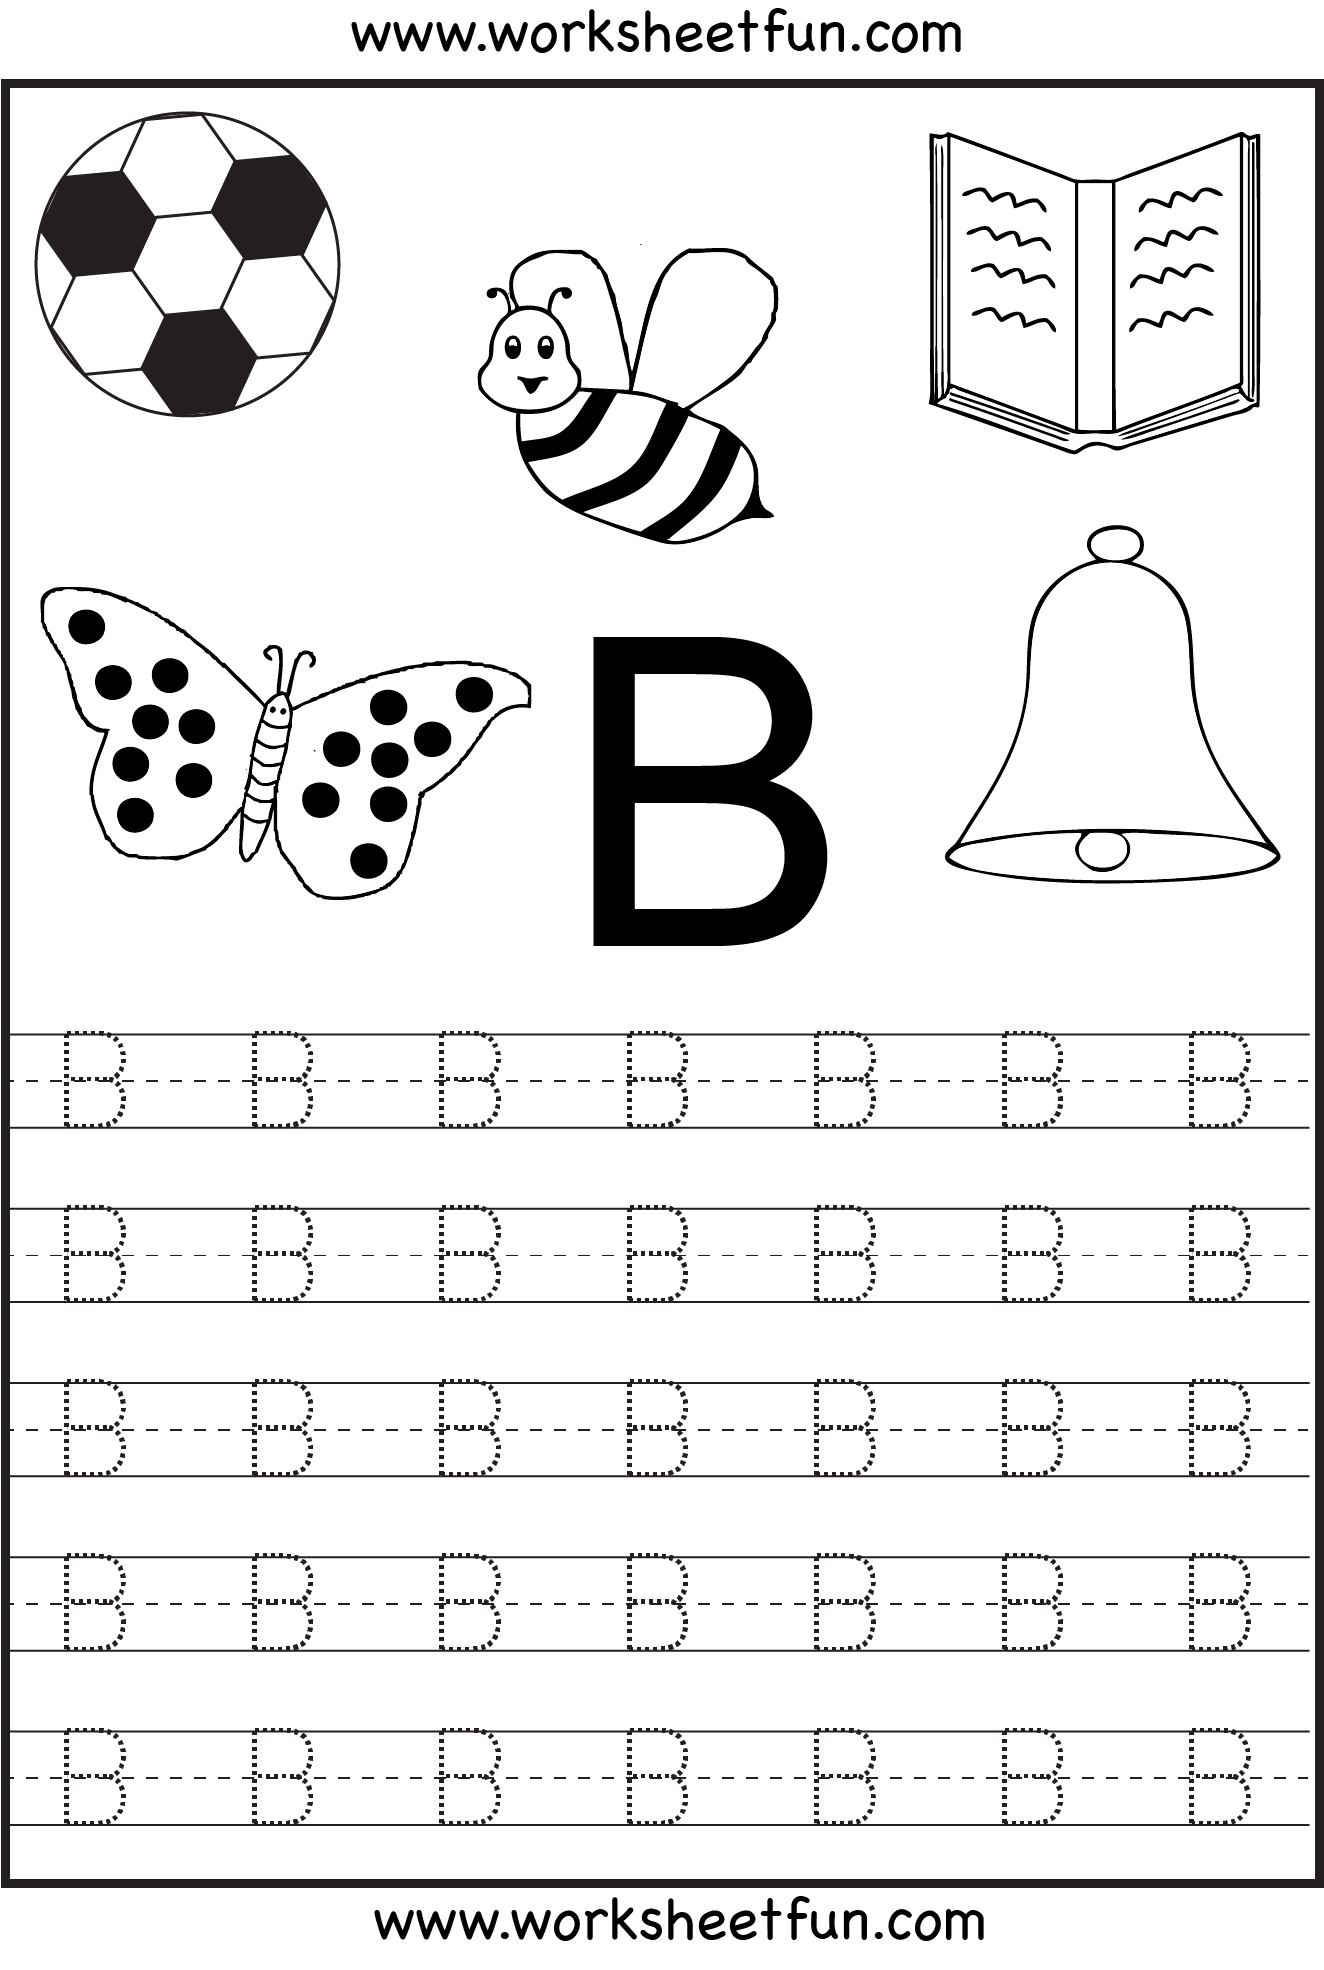 Worksheet Pre K Alphabet Tracing Worksheets action preschool alphabet and on pinterest free printable letter tracing worksheets for kindergarten 26 worksheets